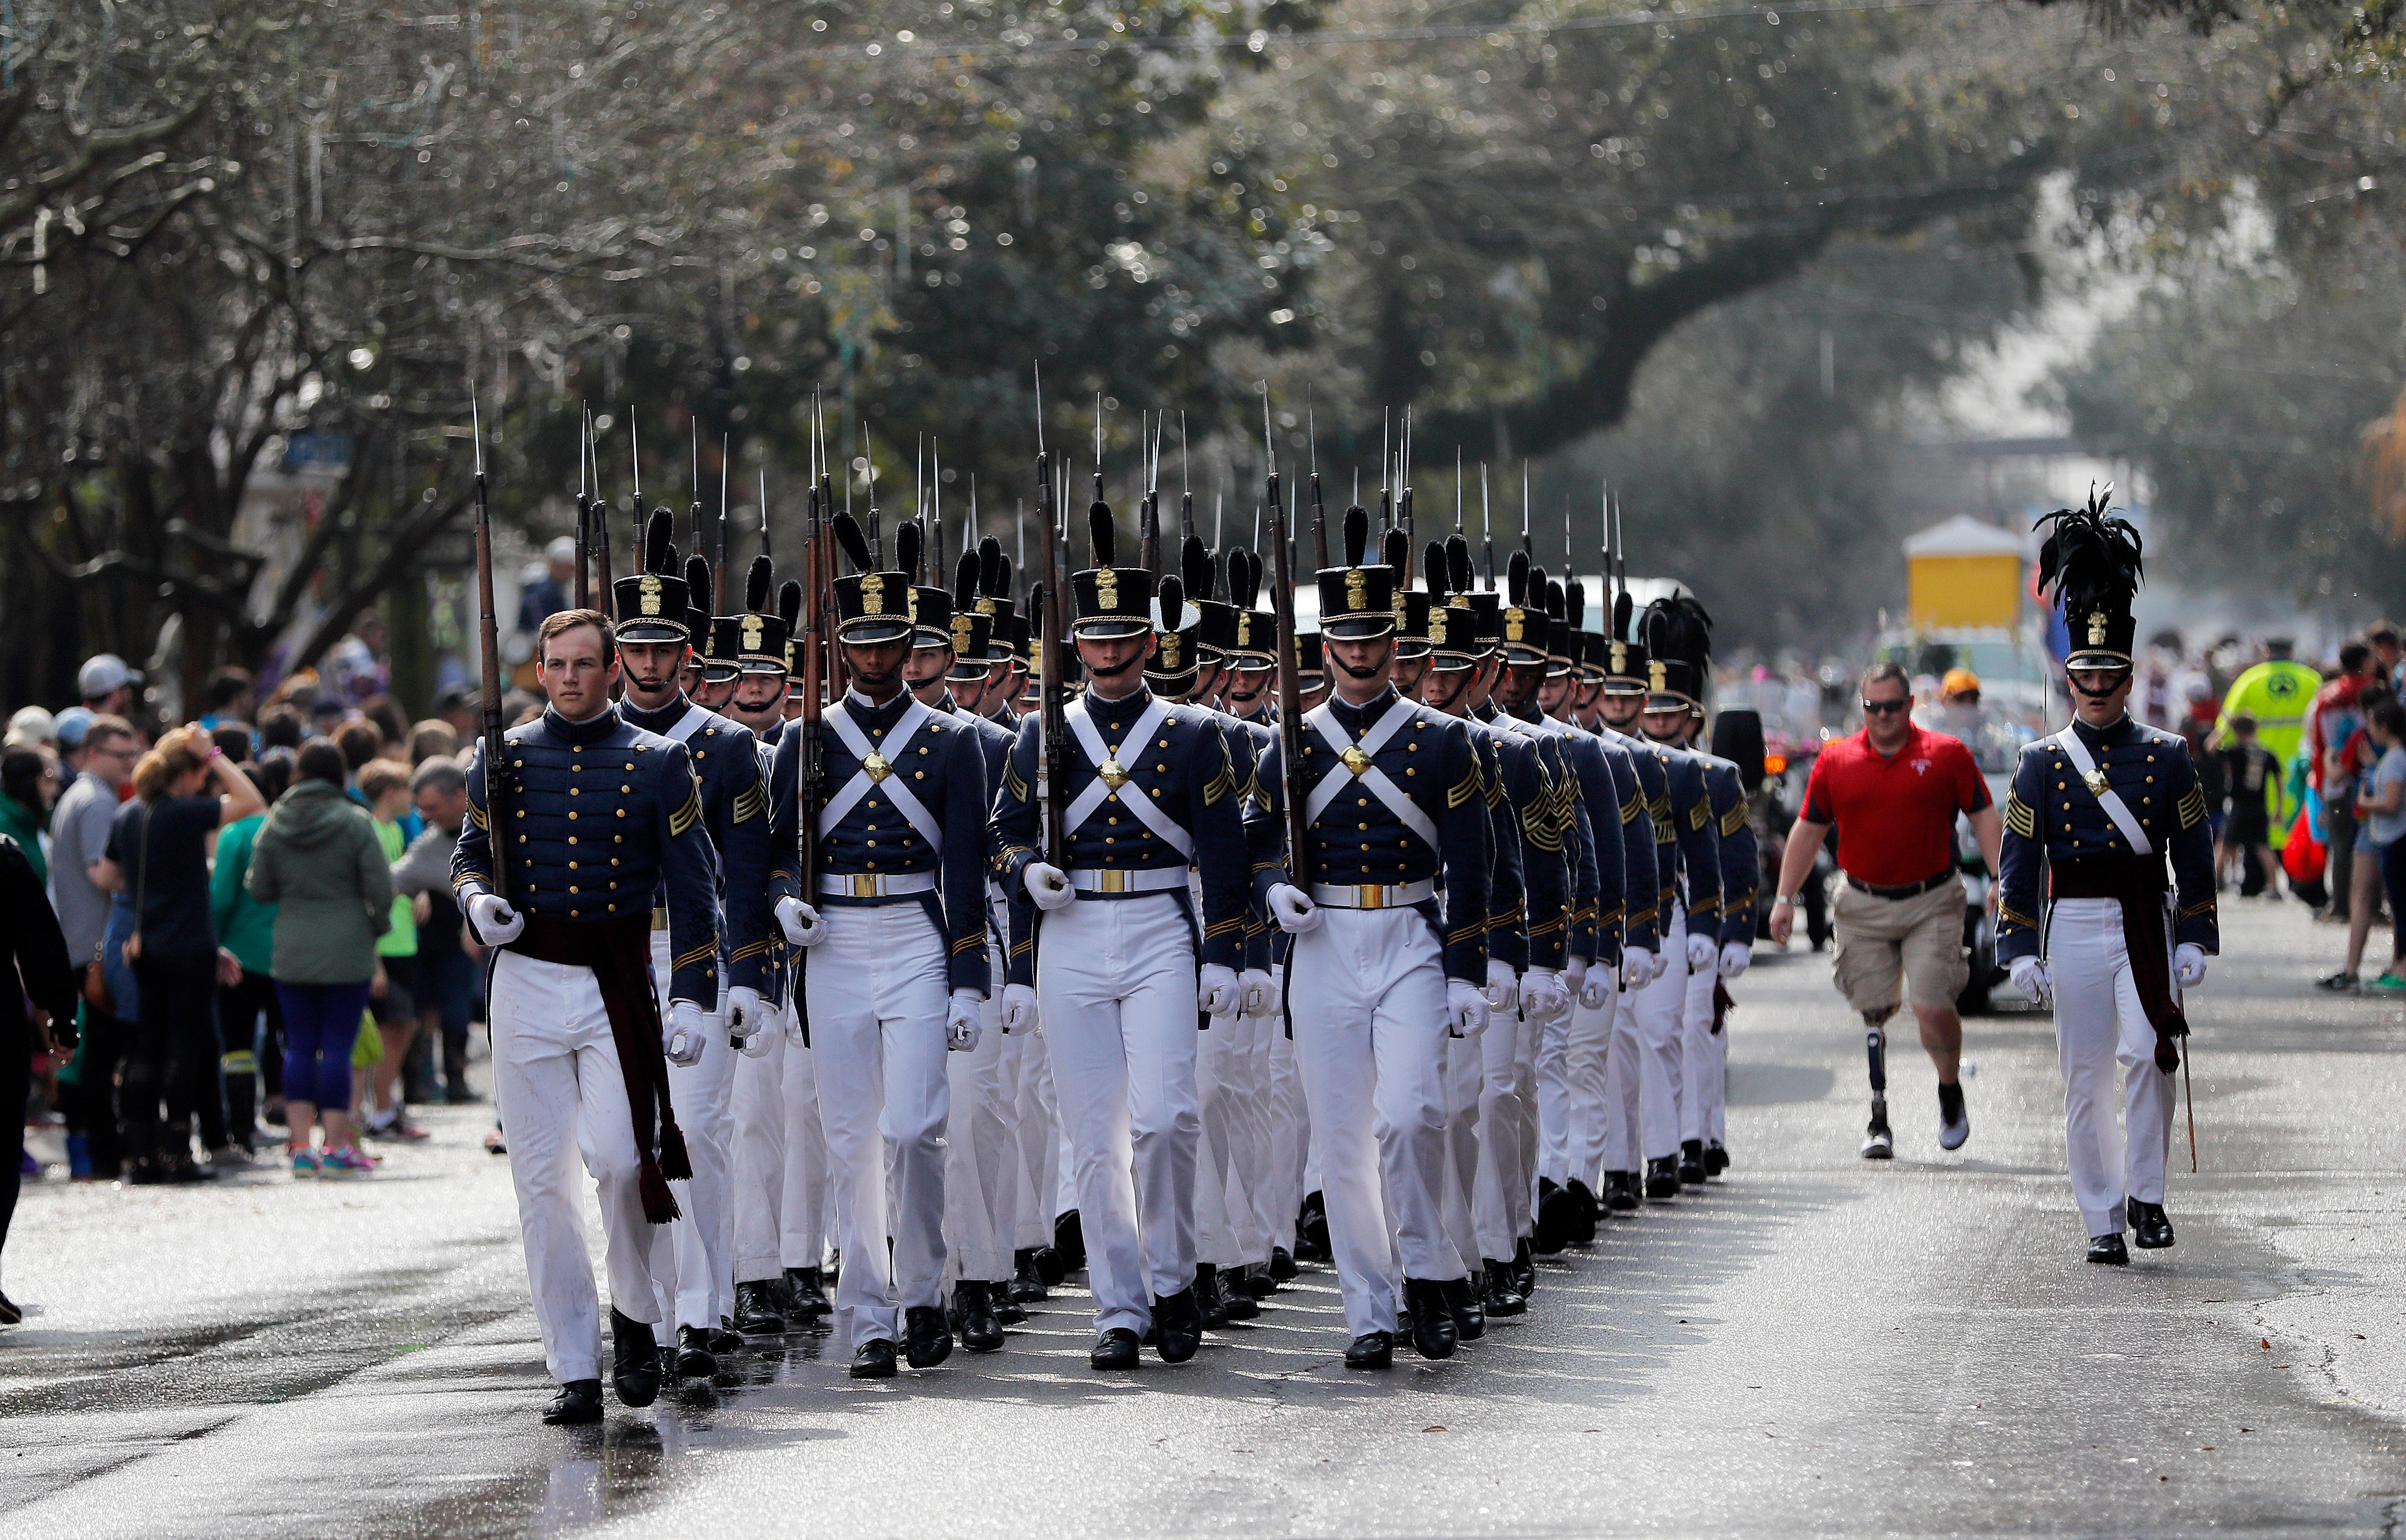 A military drill team marches during the Krewe of Thoth Mardi Gras parade in New Orleans, Sunday, Feb. 11, 2018. The krewe's original parade route was designed specifically to serve people who were unable to attend other parades in the city. The route passes in front of several extended healthcare facilities. Carnival season will culminate on Mardi Gras day this Tuesday, Feb. 13. (AP Photo/Gerald Herbert)